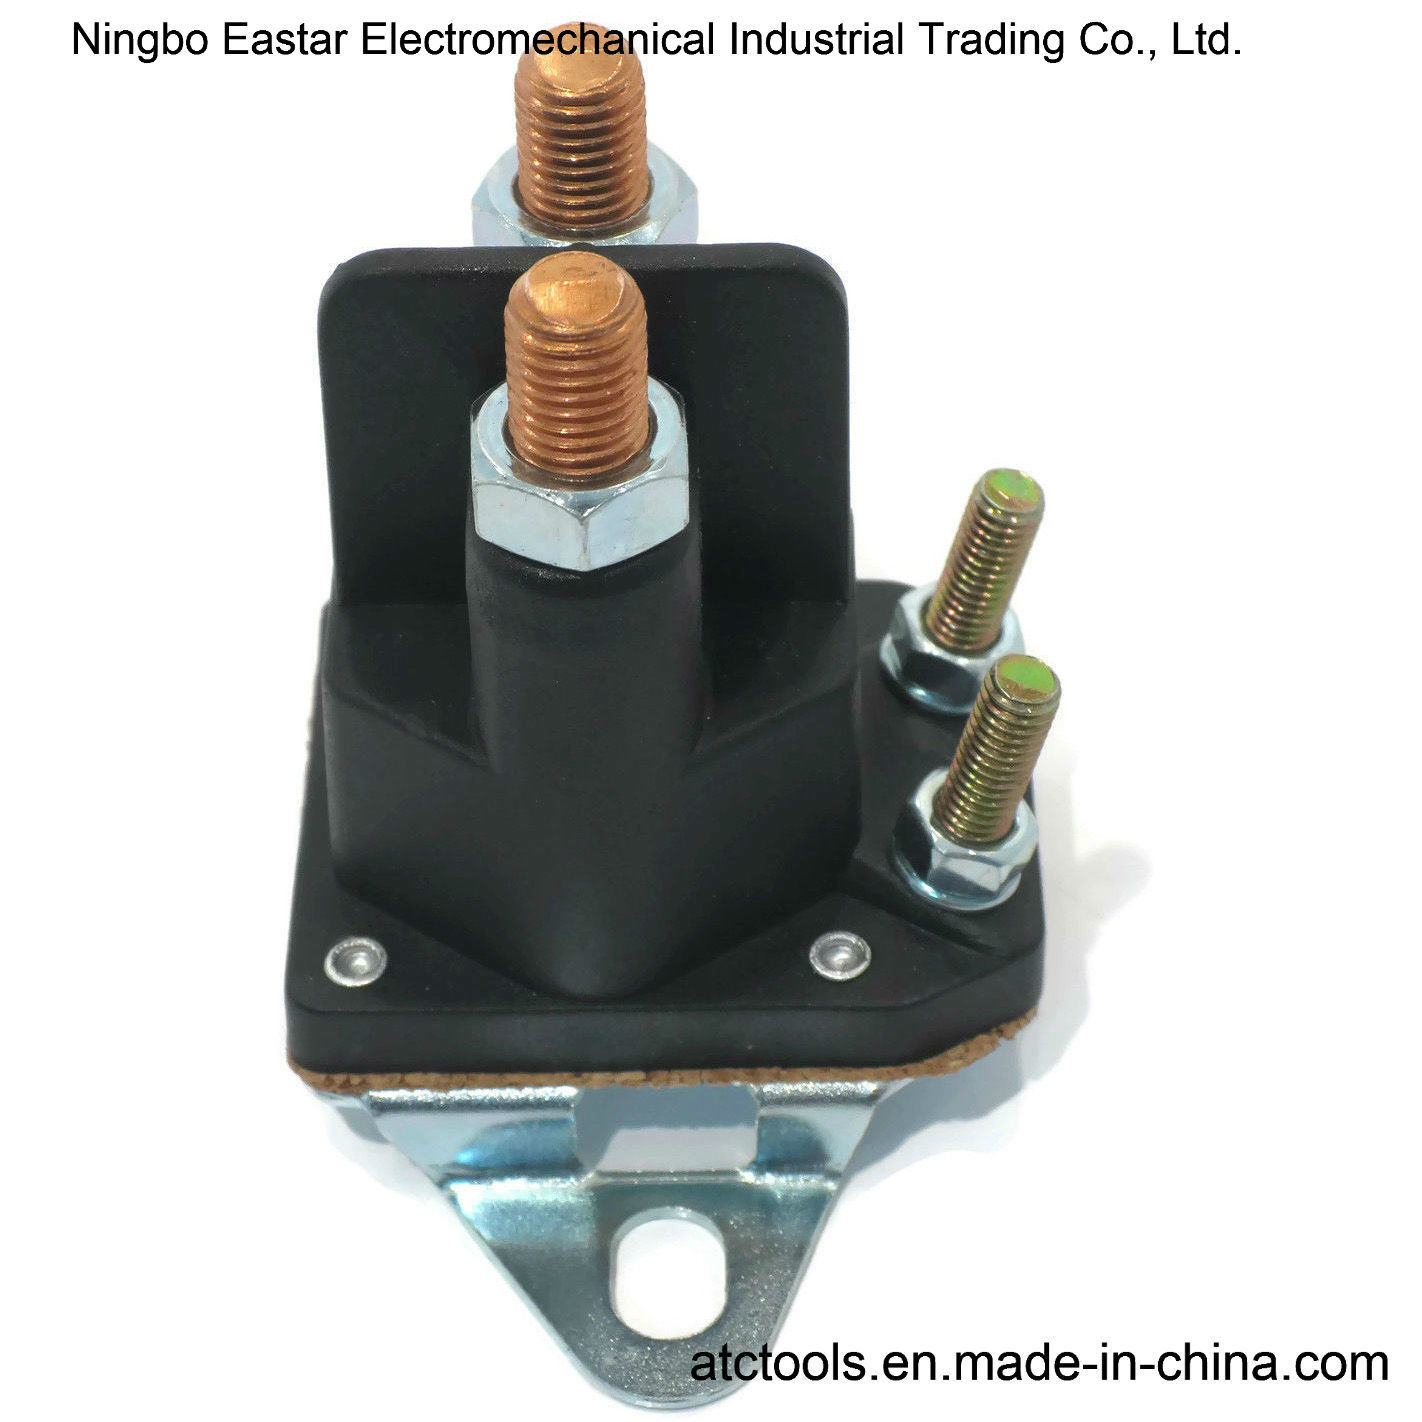 Toro Starter Solenoid 12 Volt Wiring Diagram Ss5000 China Replaces Sears Craftsman 1422x1422